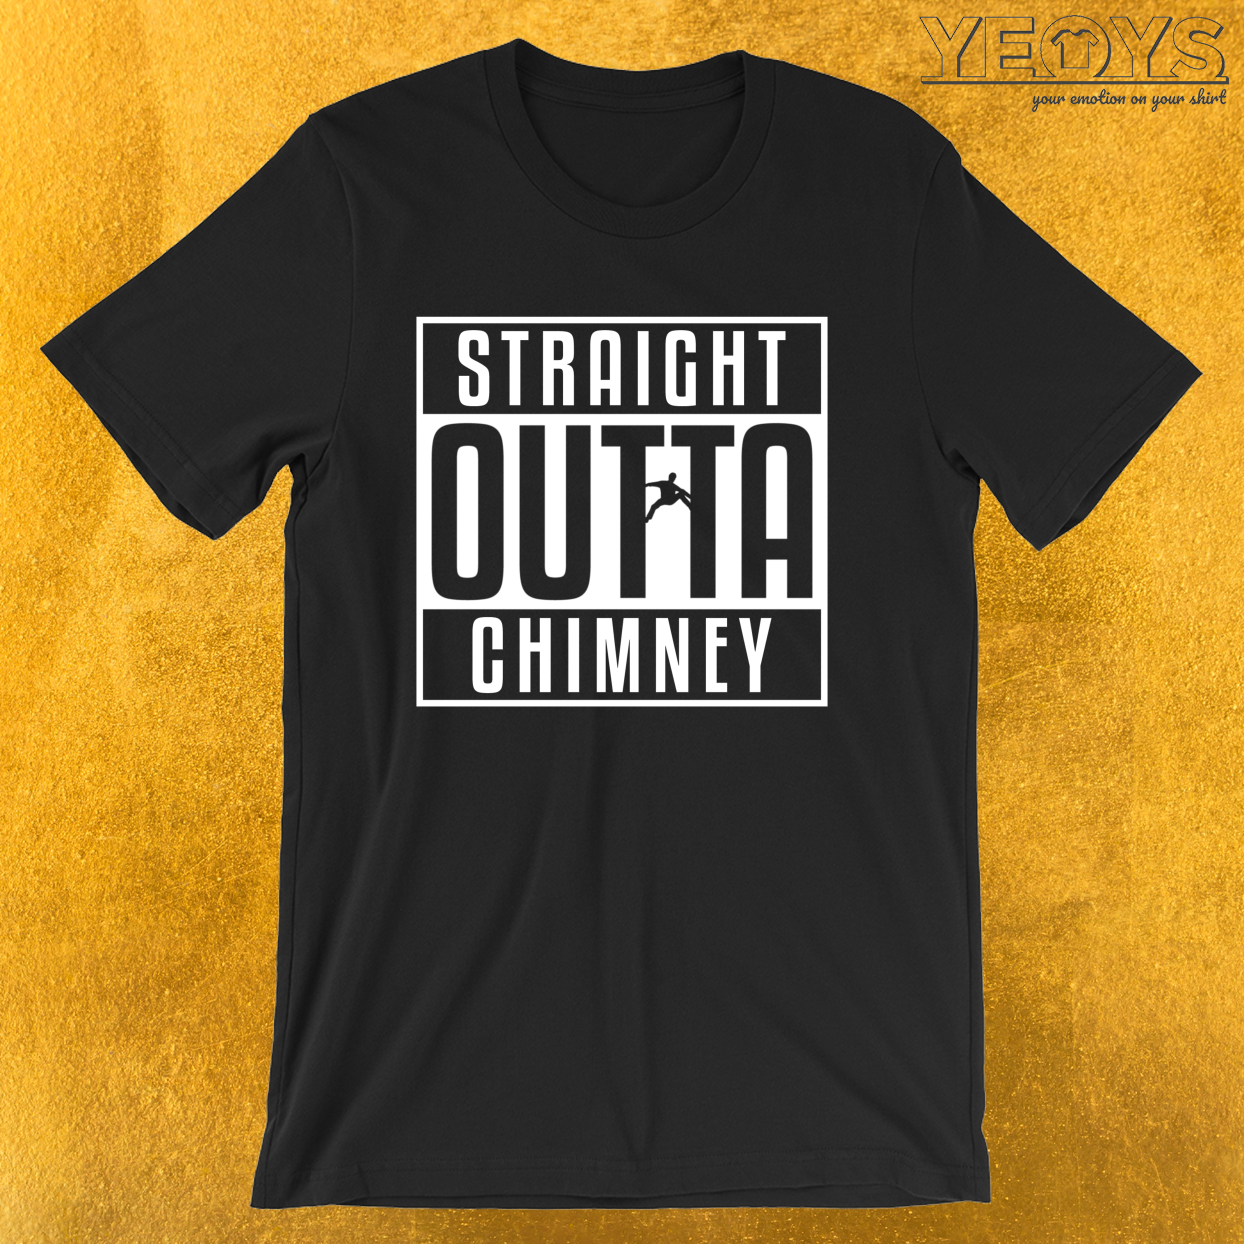 Straight Outta Chimney – Rock Climbing Tee